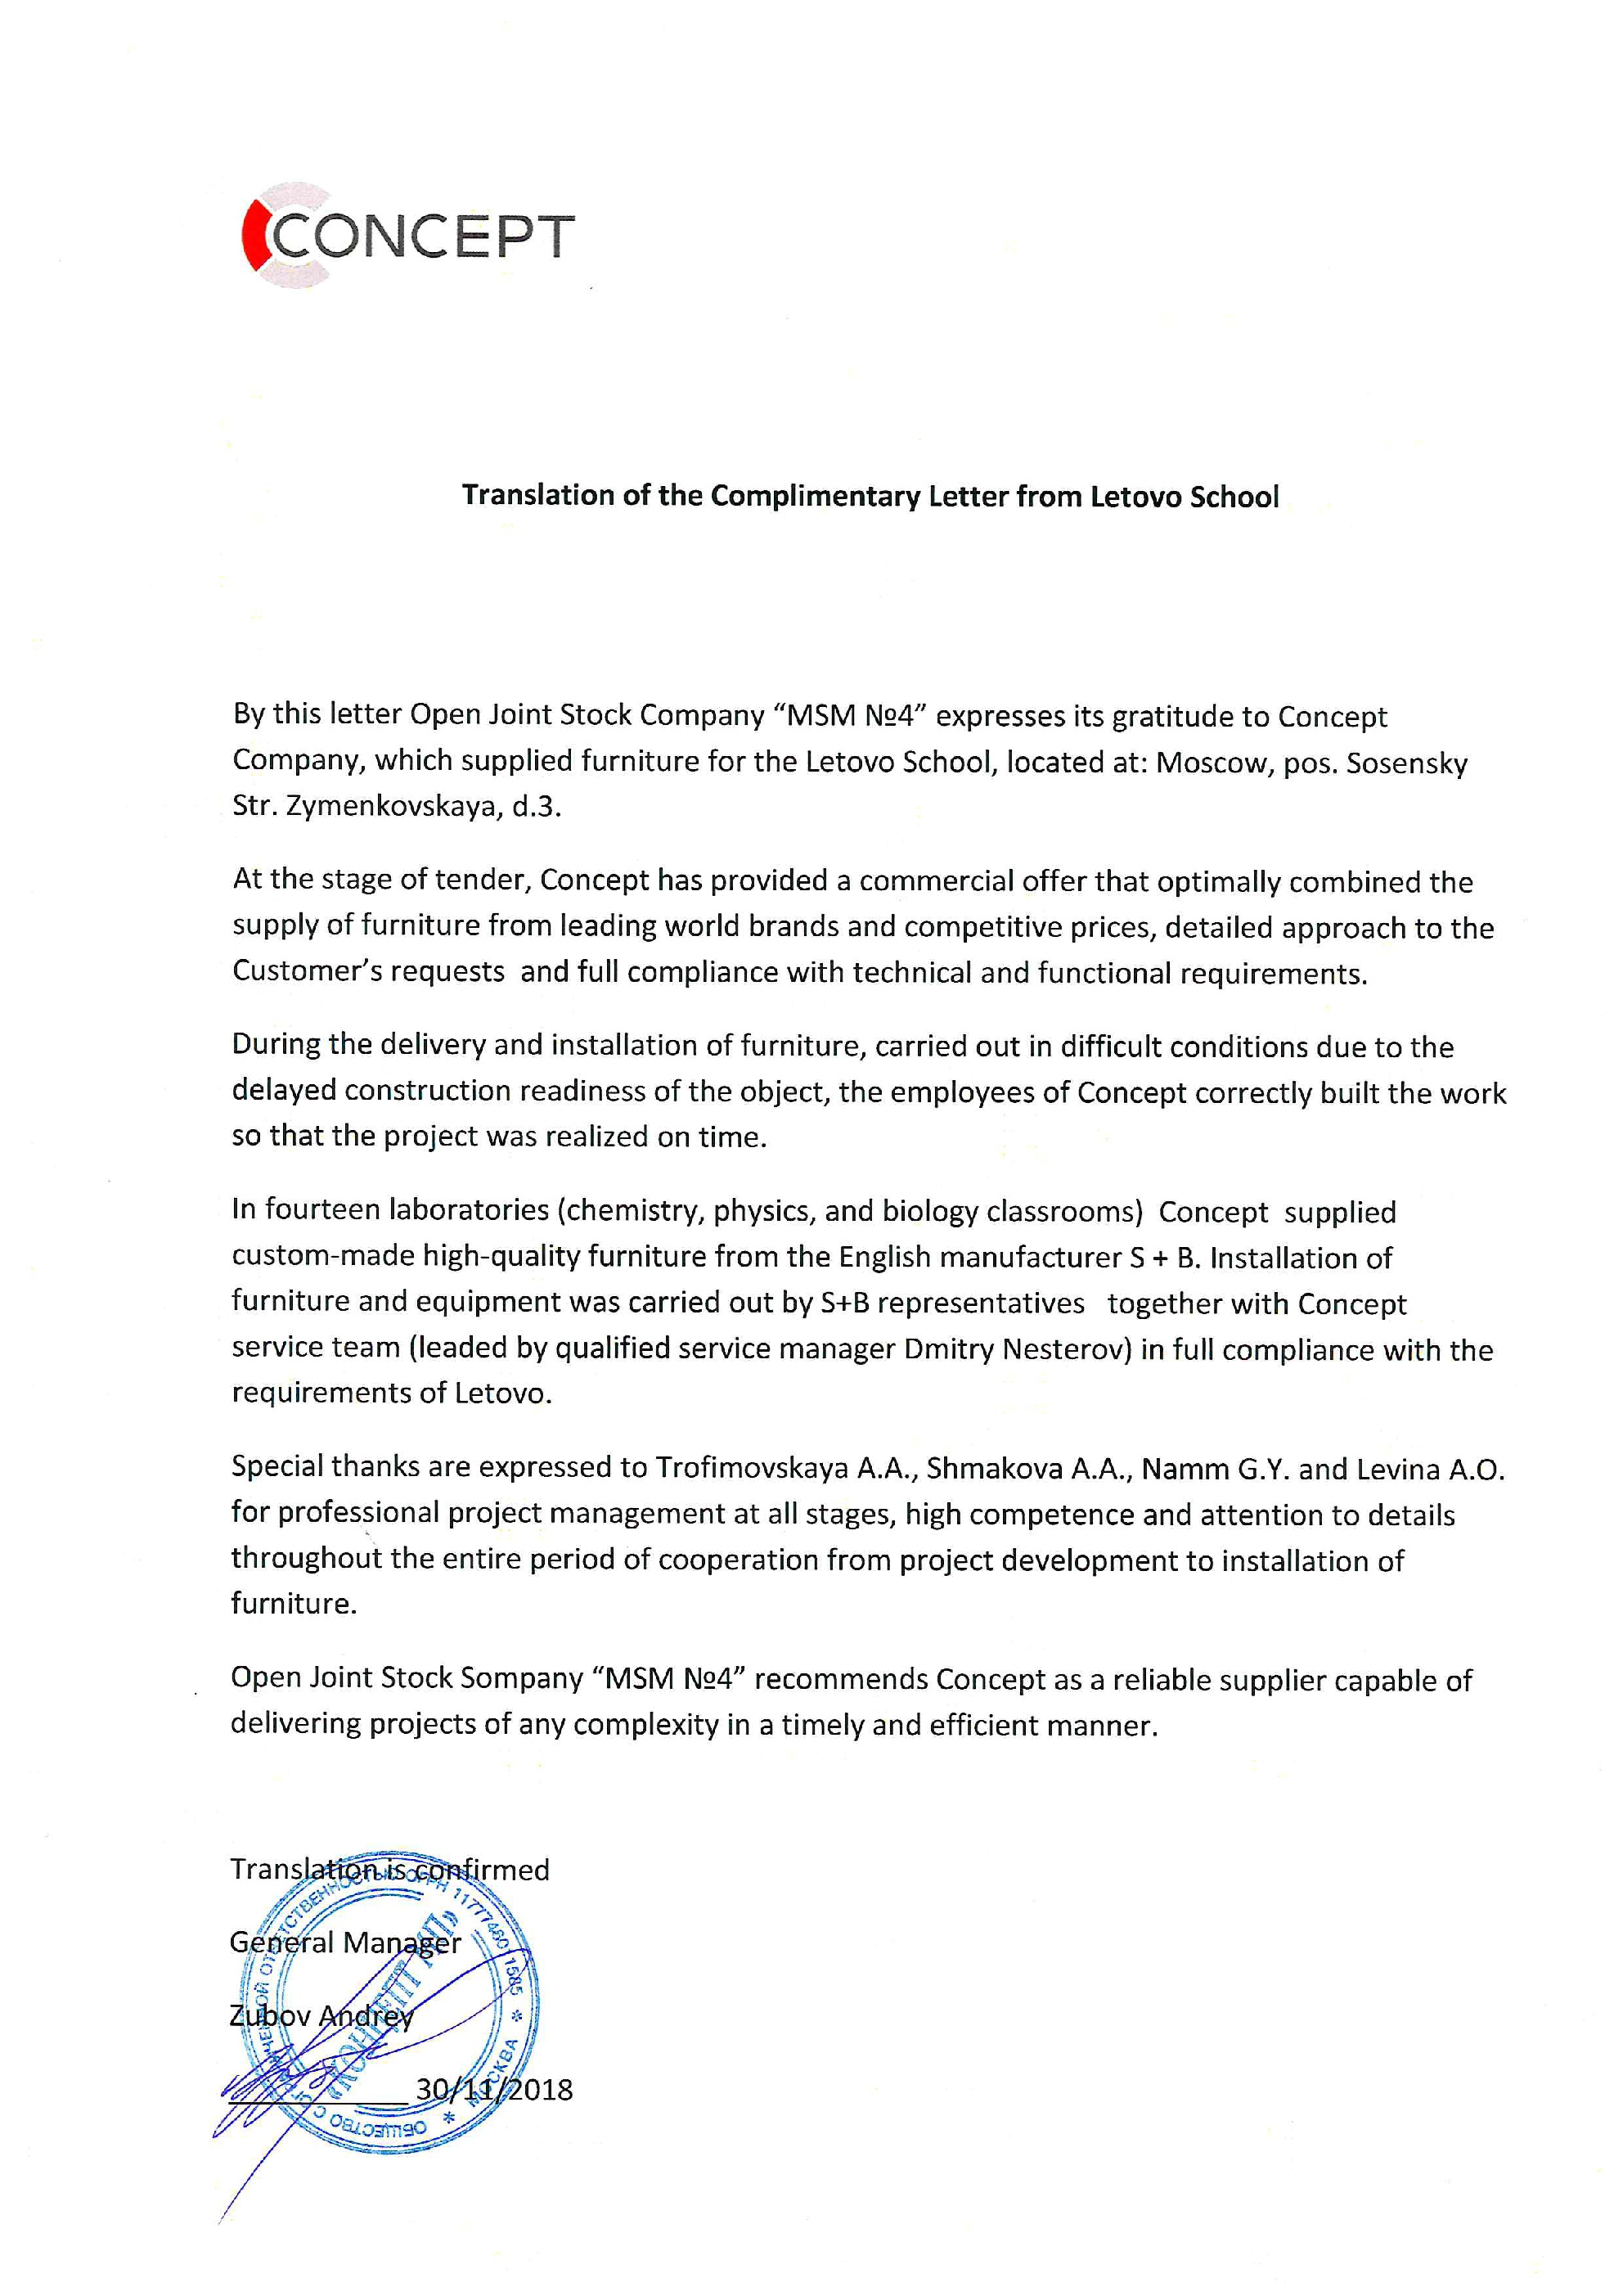 Reference Letter from Letovo School to Concept